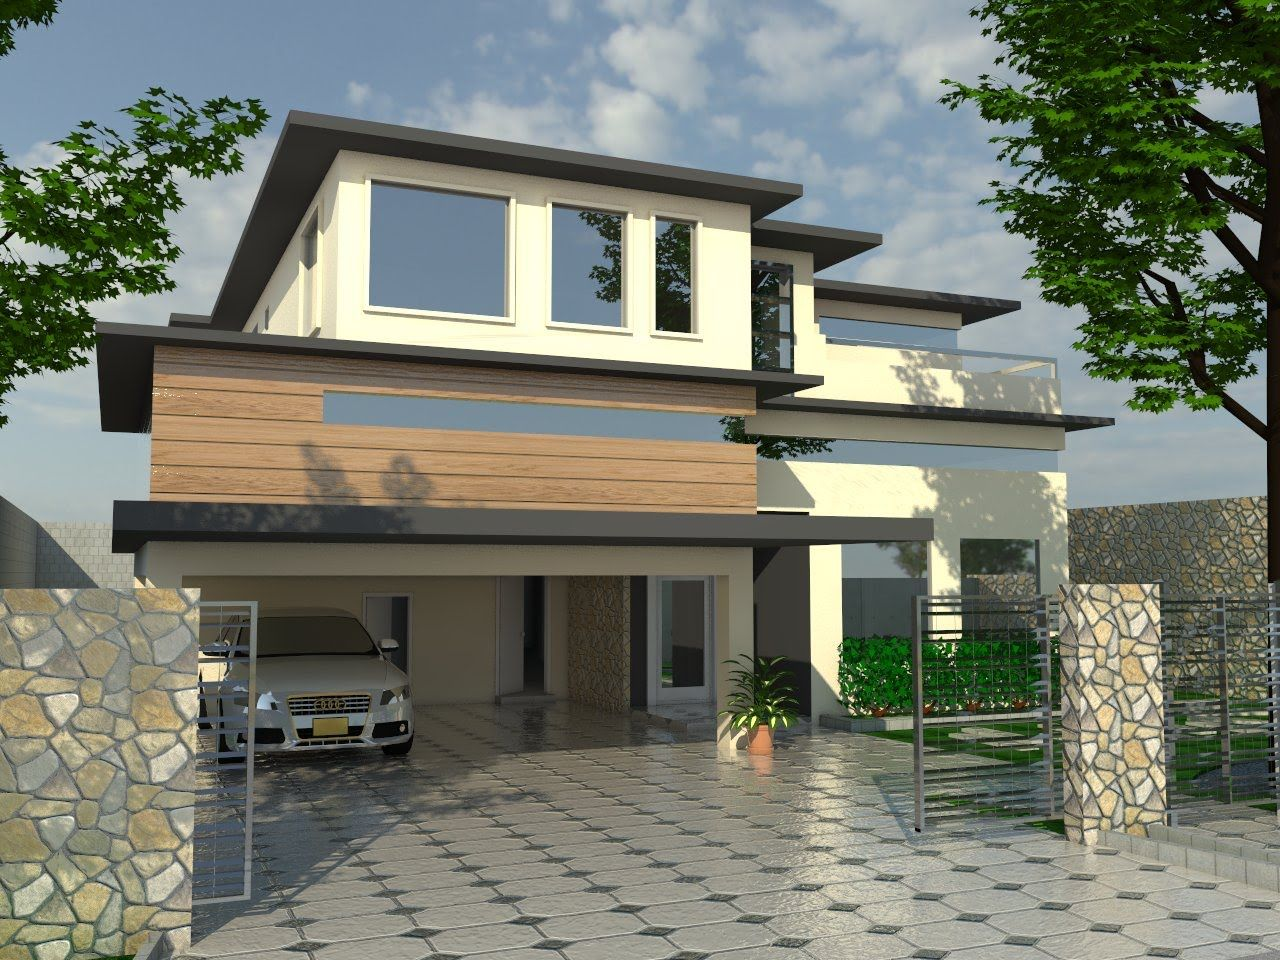 Bon Sketchup Designsketchup House Rendering Part8 Youtube Luxury Sketchup